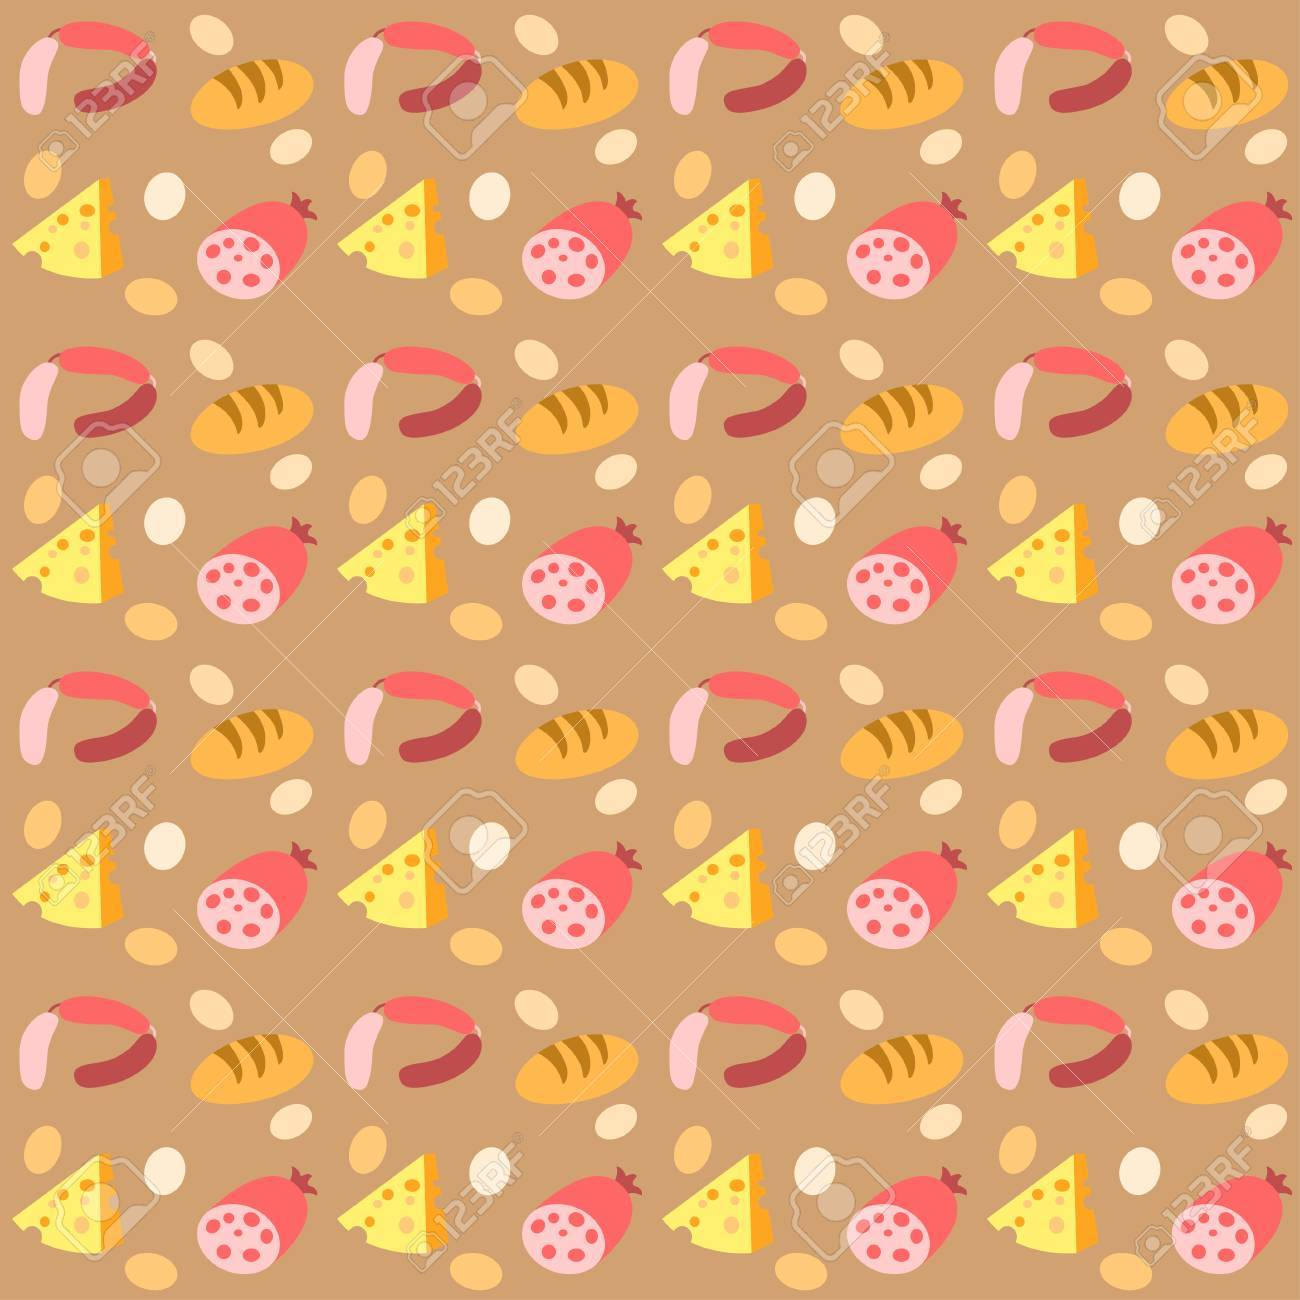 Vector Morning Breakfast Seamless Pattern With Scrambled Eggs 1300x1300